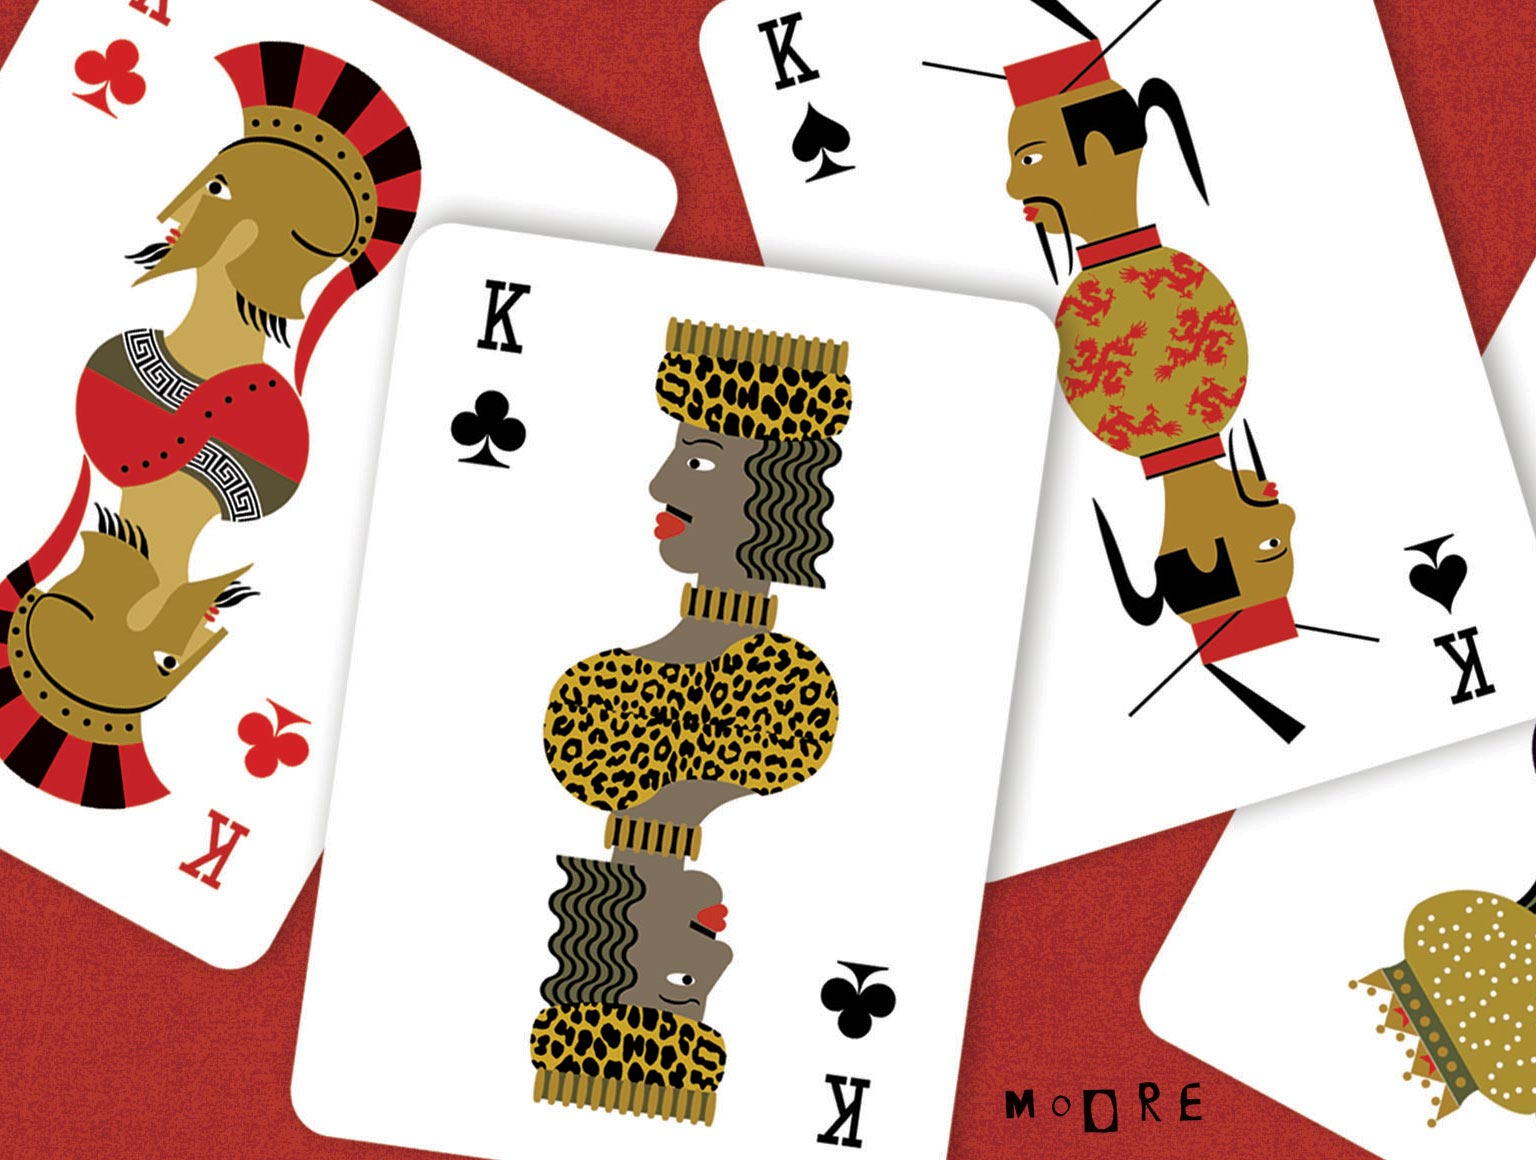 Illustration of playing cards with different nationalities represented as kings or queens